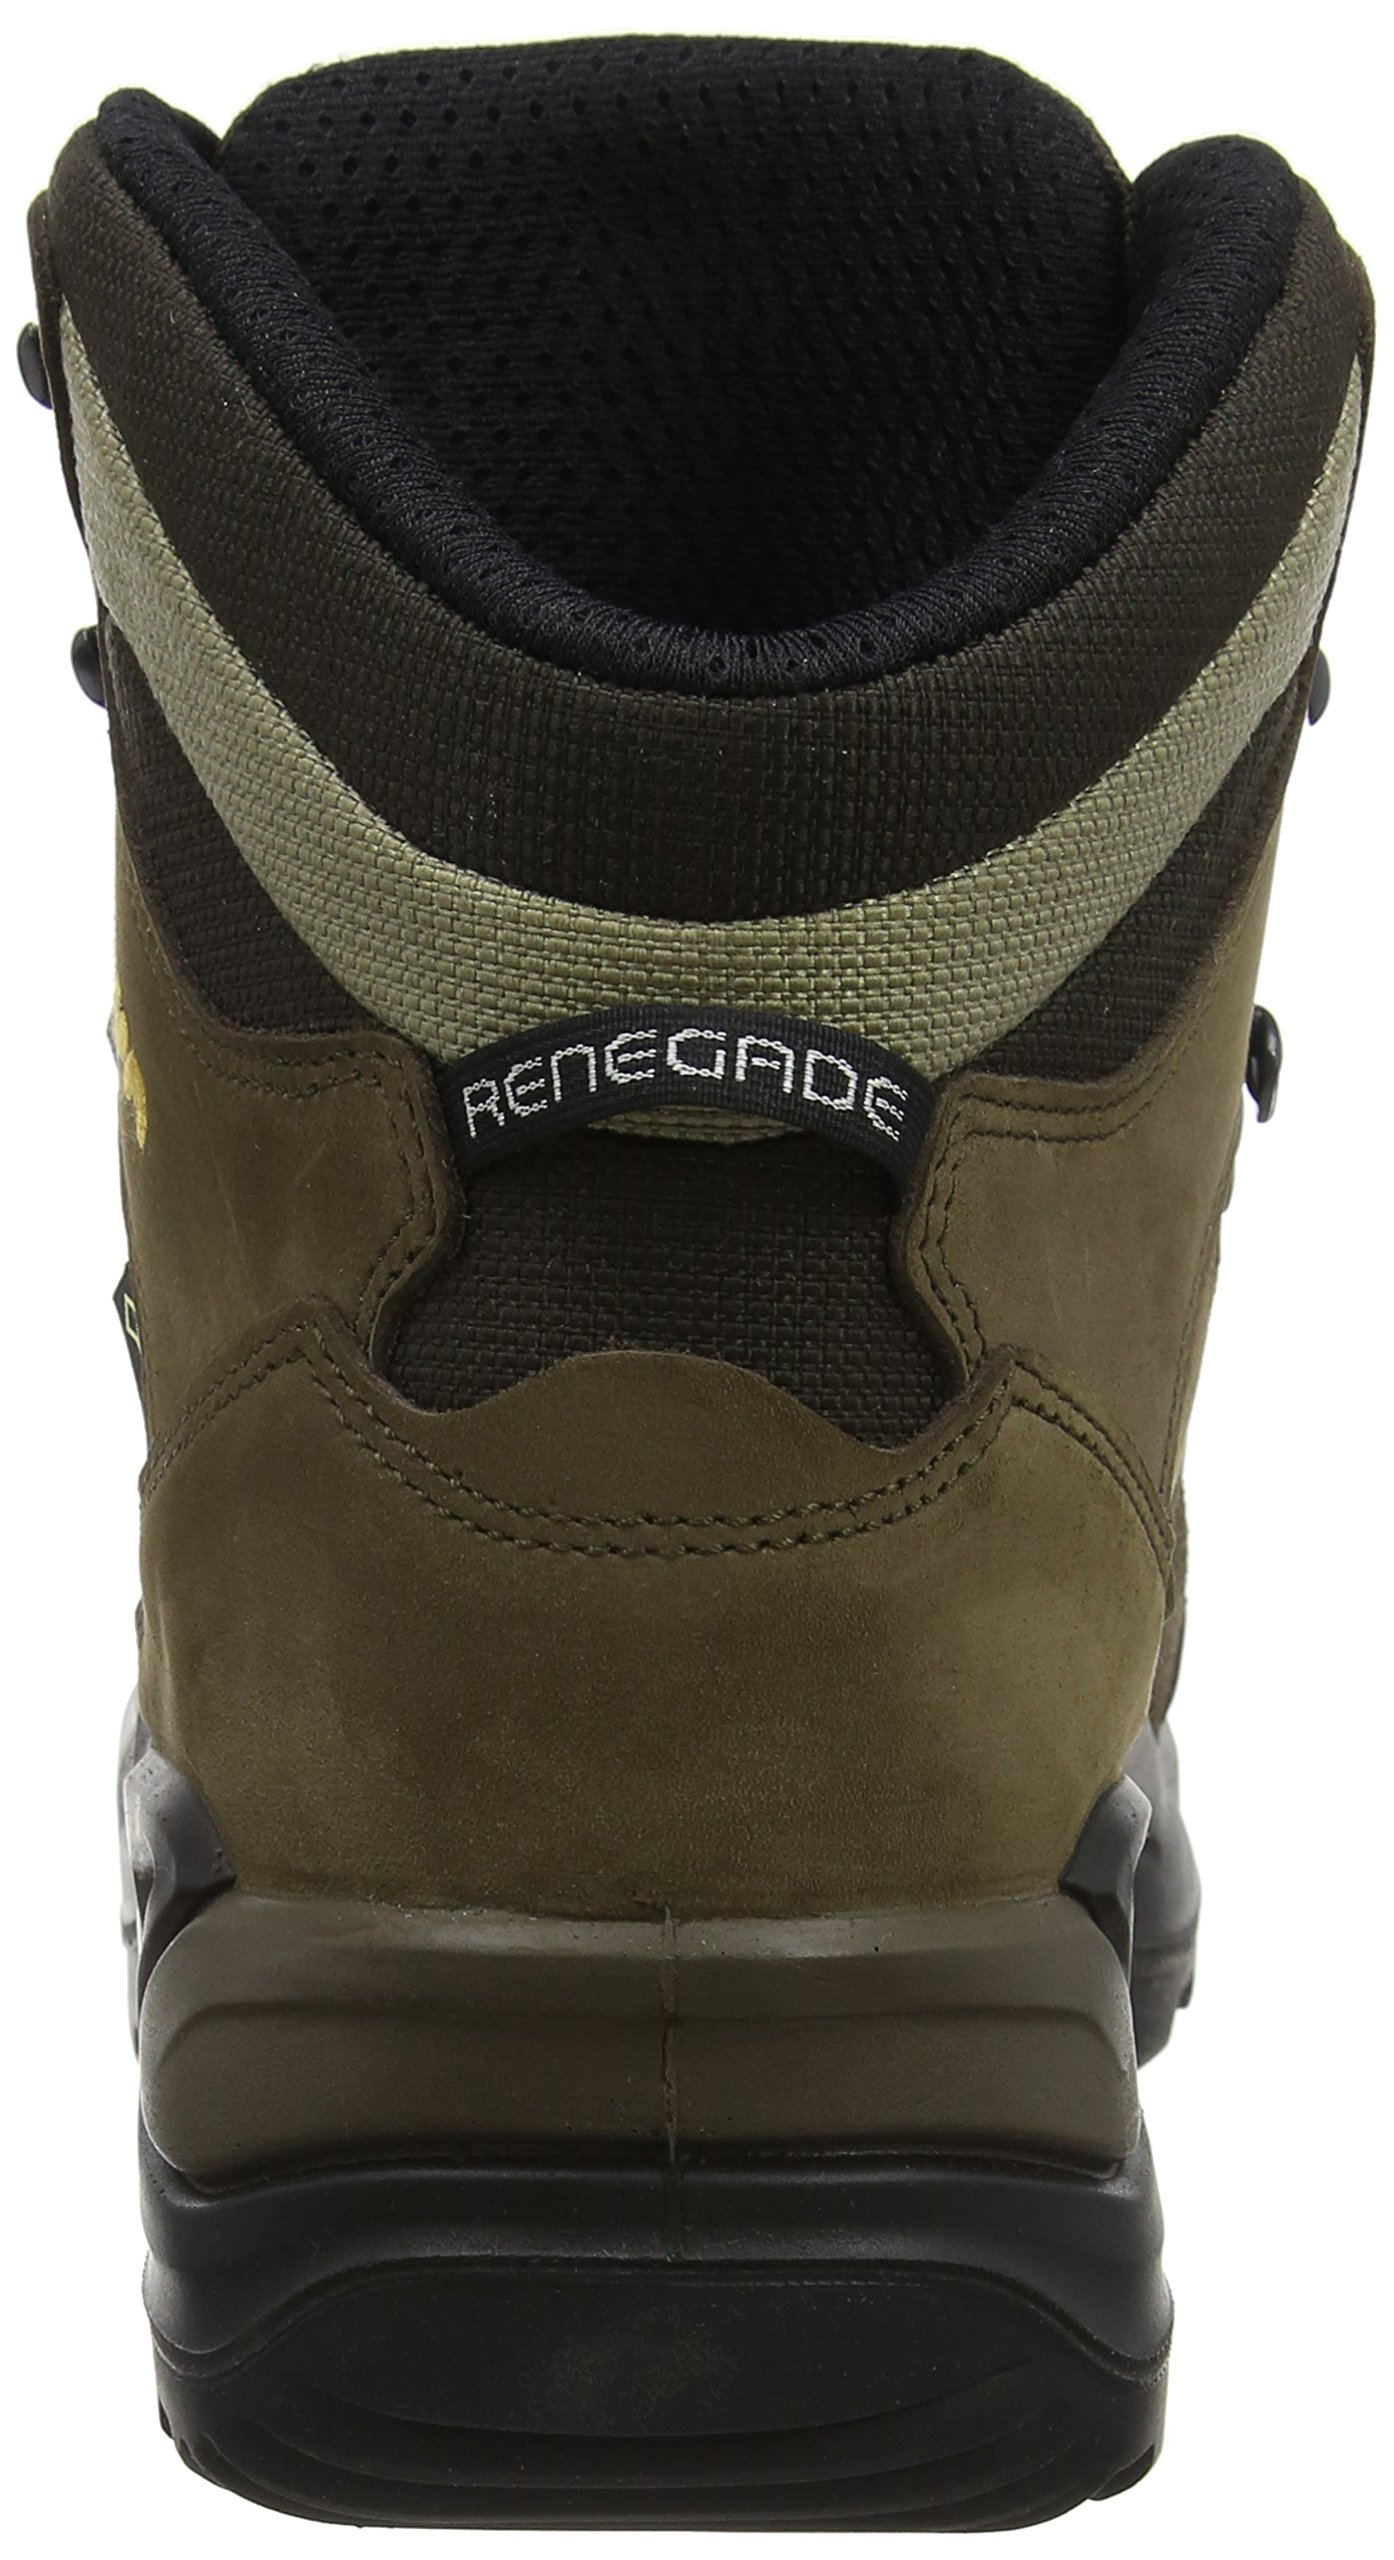 81uS6QDmHcL - Lowa Men's Renegade GTX Mid High Rise Hiking Boots